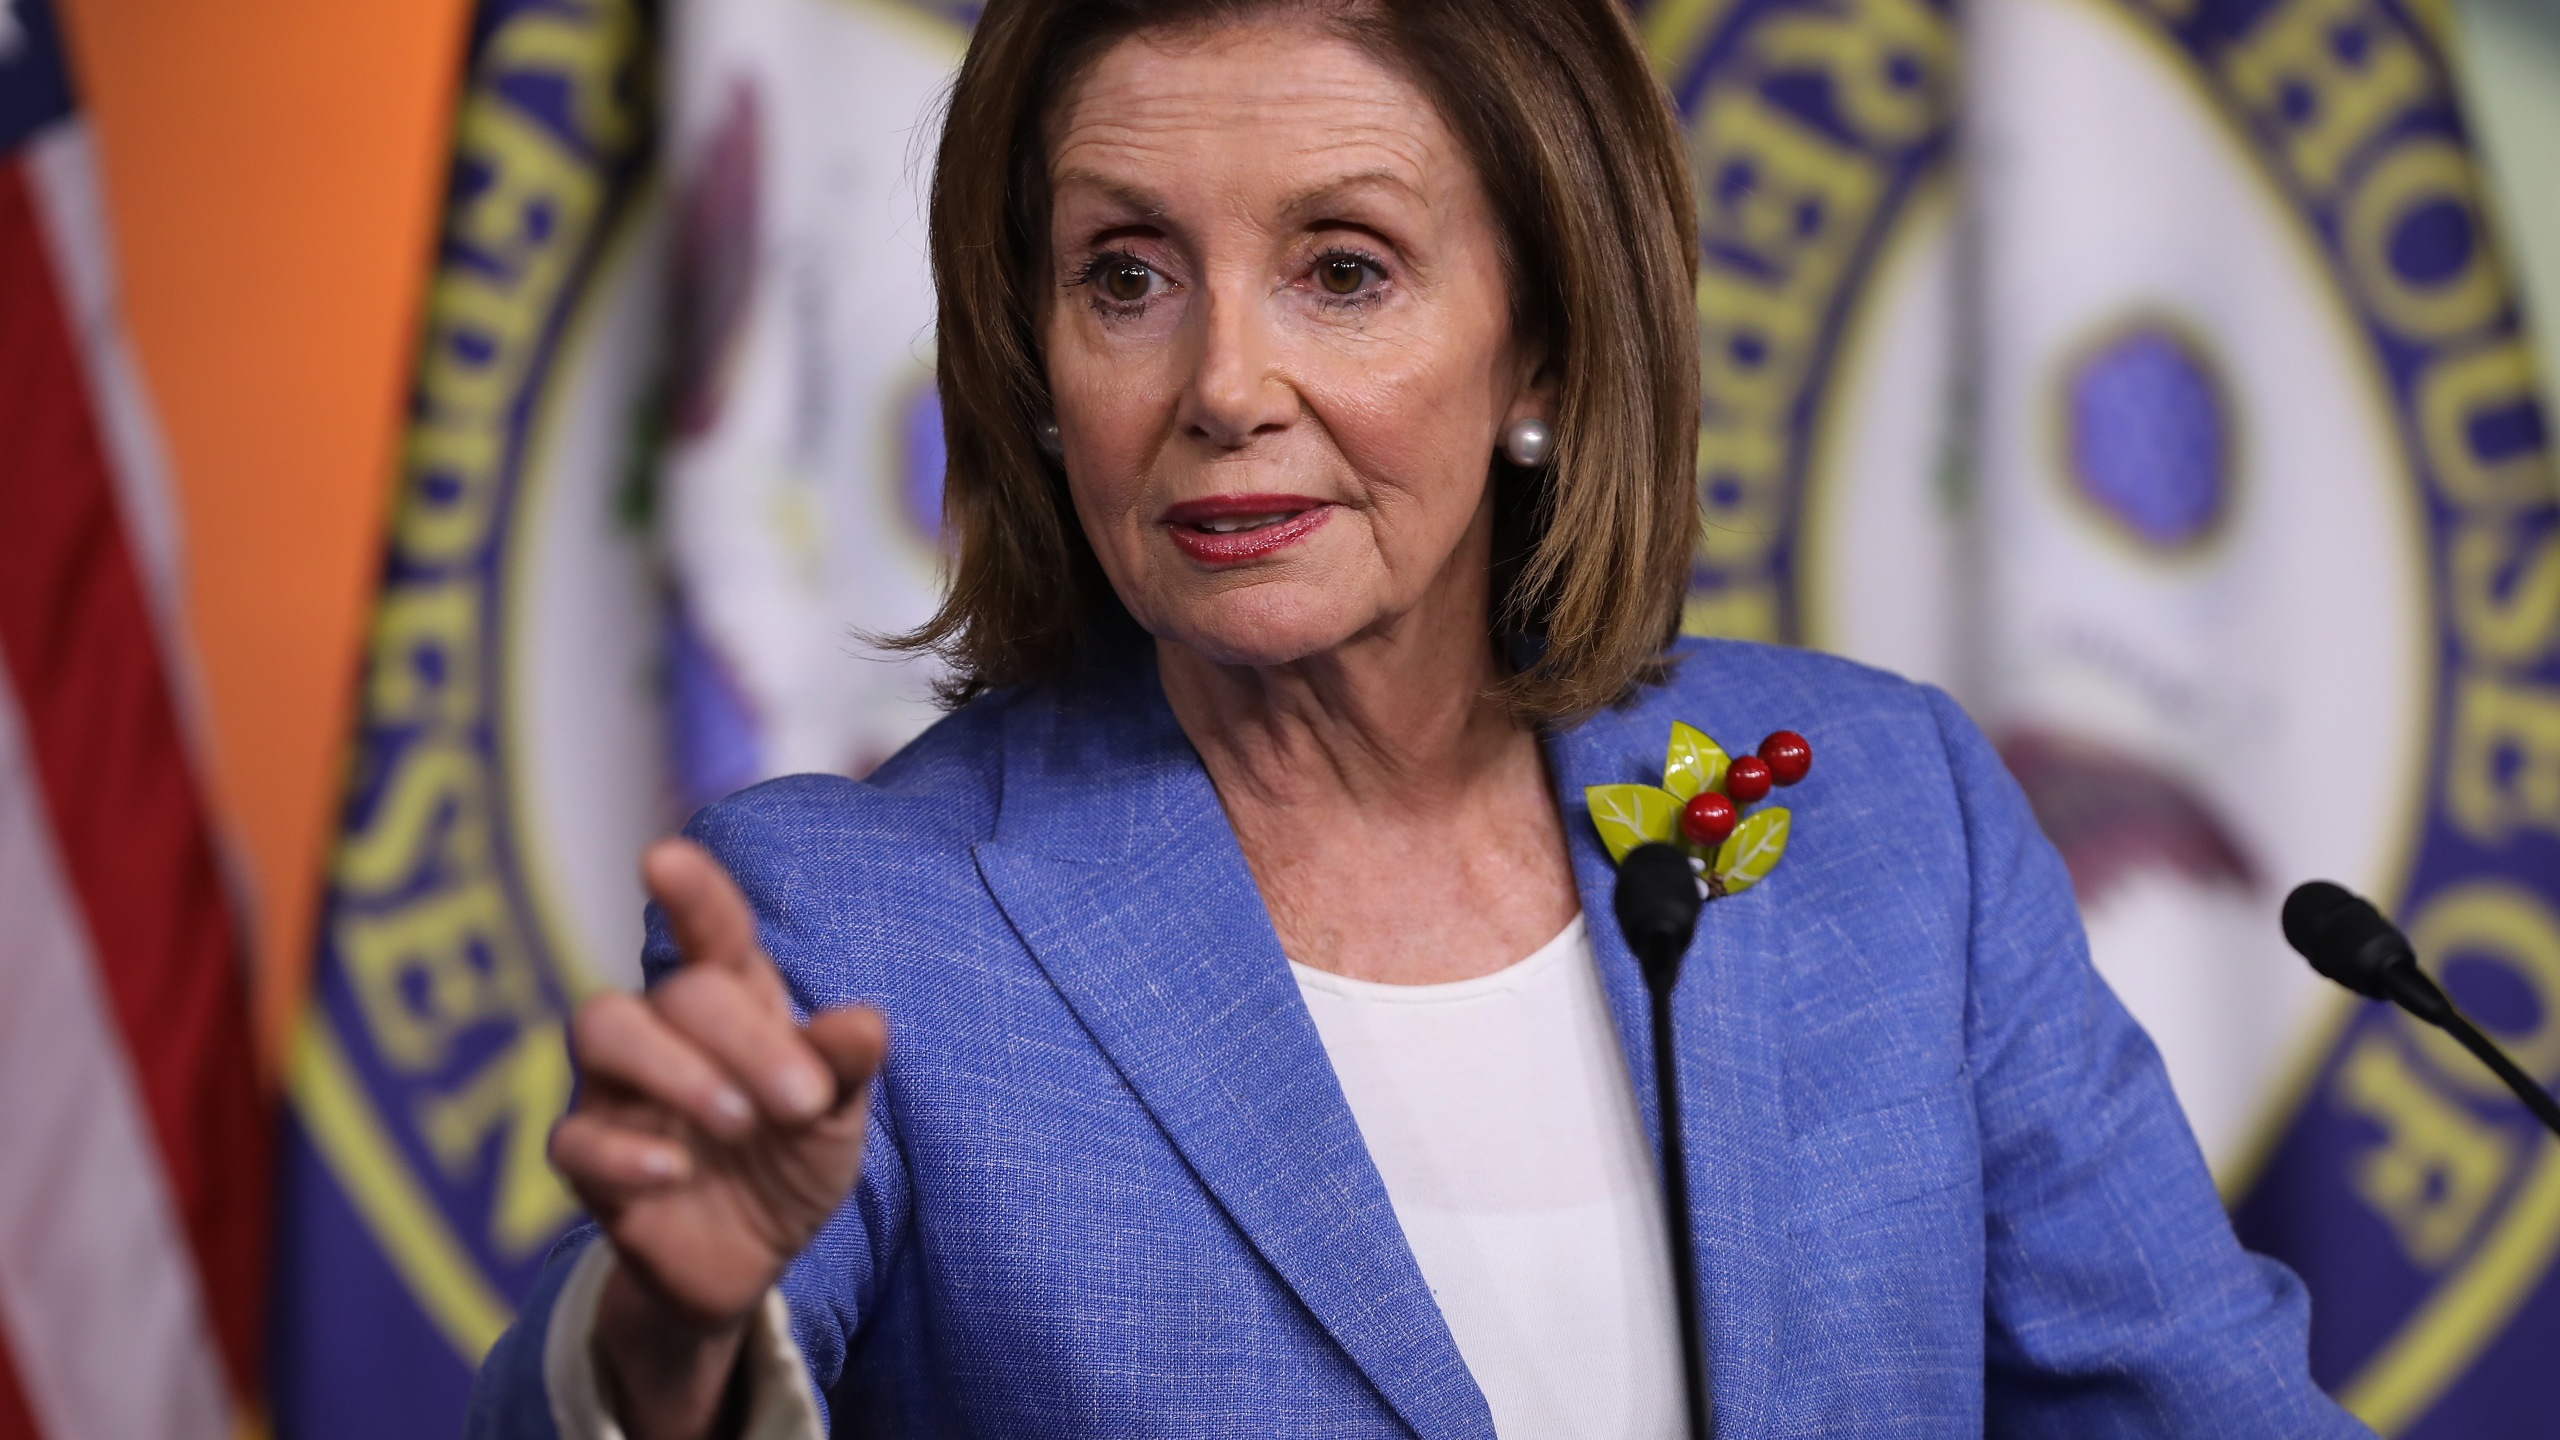 Speaker of the House Nancy Pelosi holds her weekly press conference at the U.S. Capitol on July 26, 2019. (Credit: Chip Somodevilla/Getty Images)